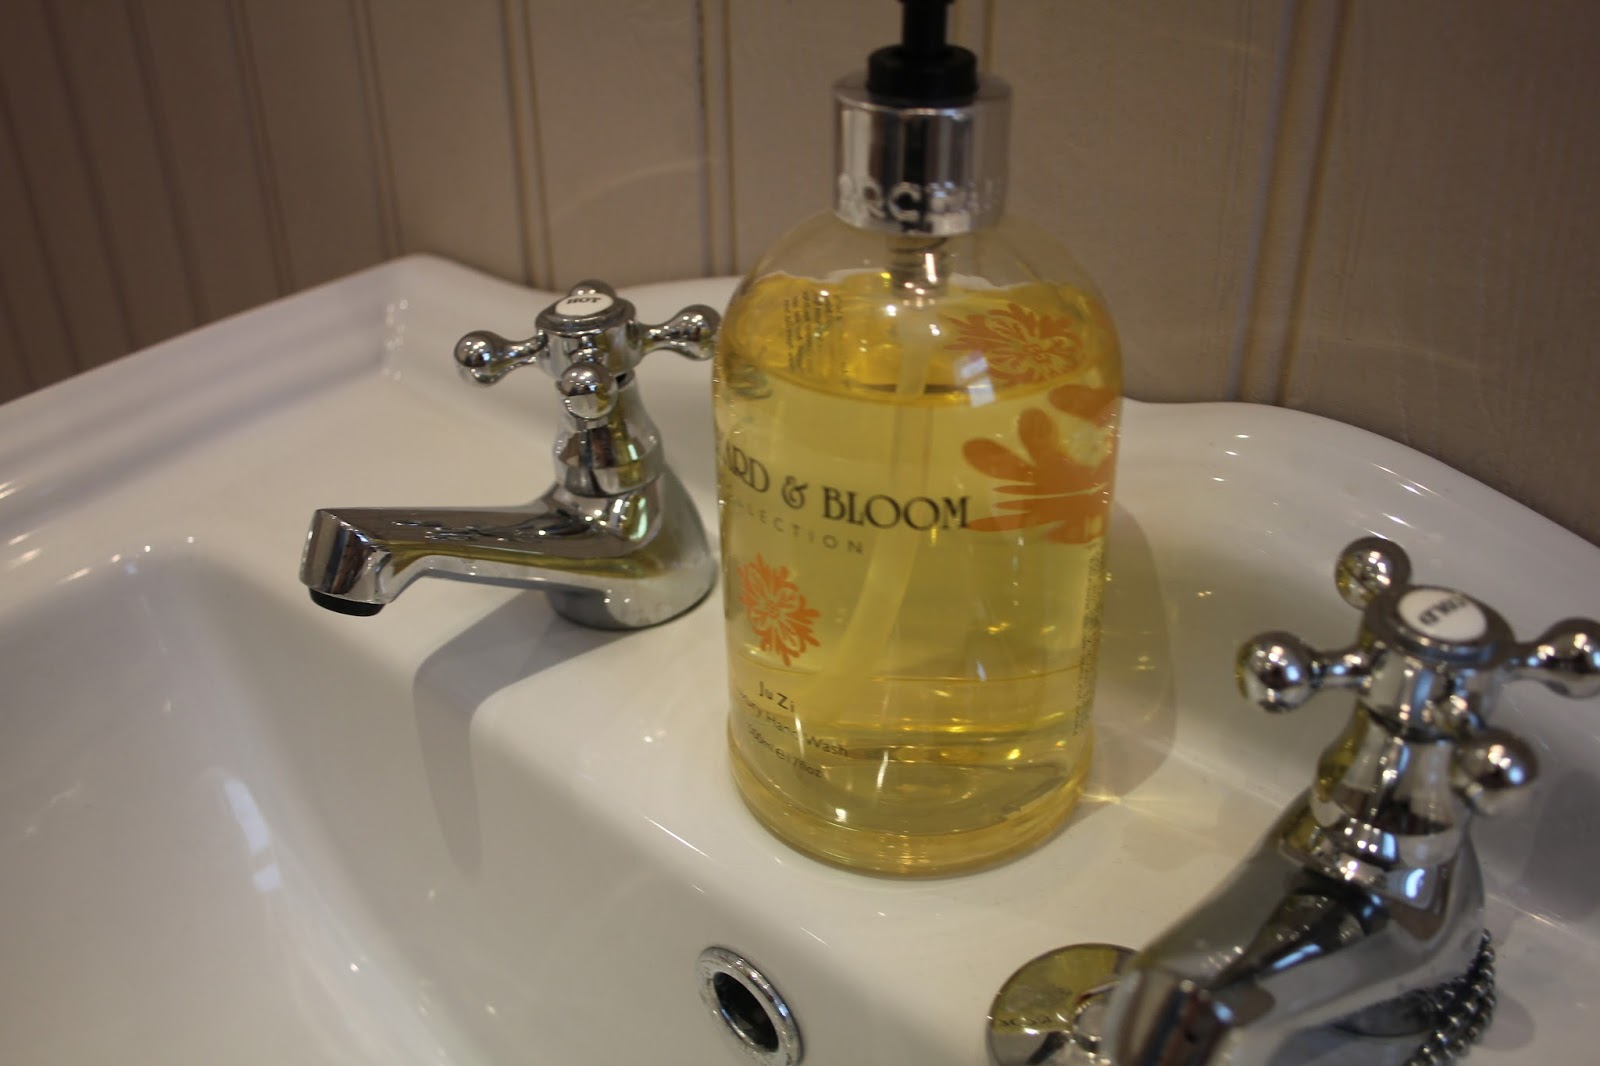 Home bargains bathroom cabinets - A Bath Caddy Is Something That Every Bath Should Have Especially A Rolltop I Was Amazed When I Found This Beautiful Wooden One For 6 99 From Home